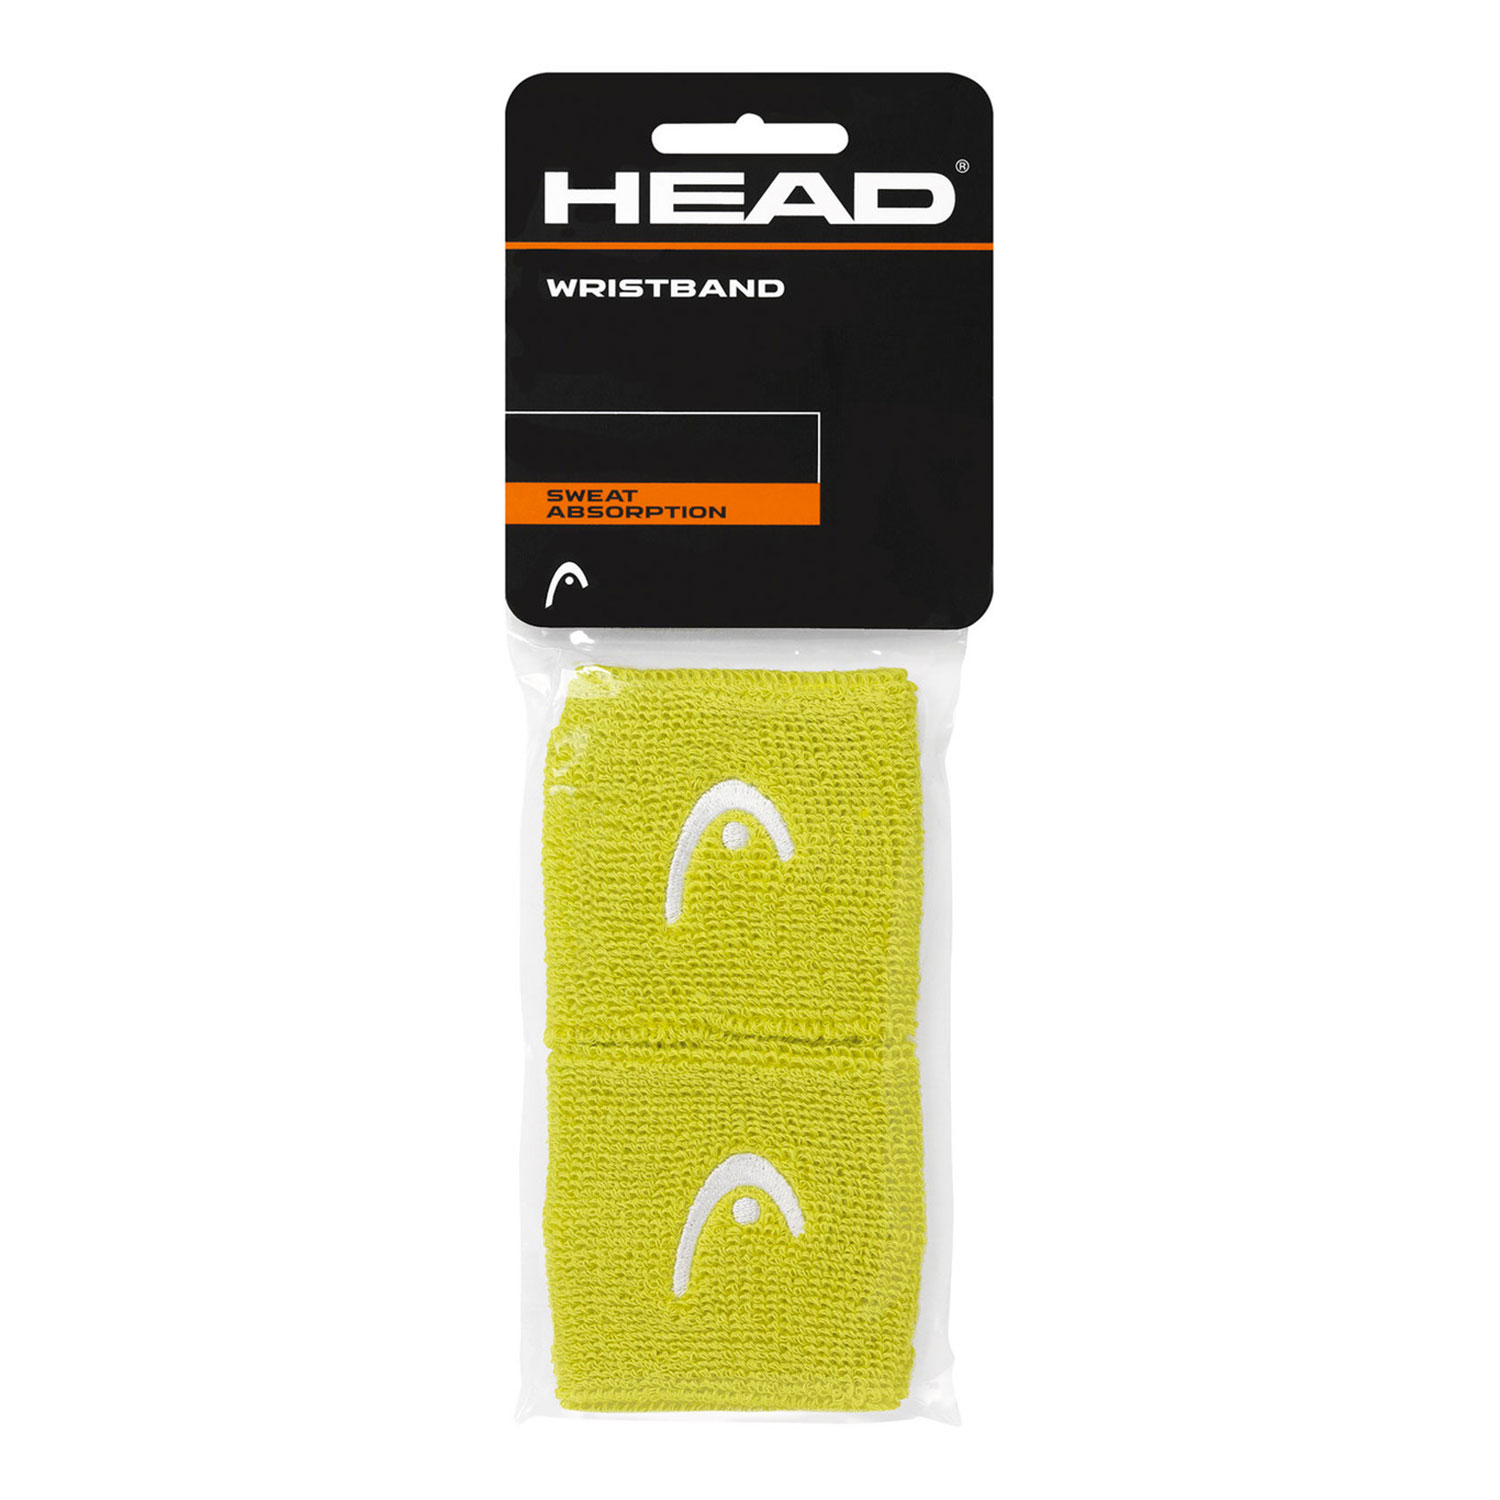 Head 2.5in Wristband - Lime/White